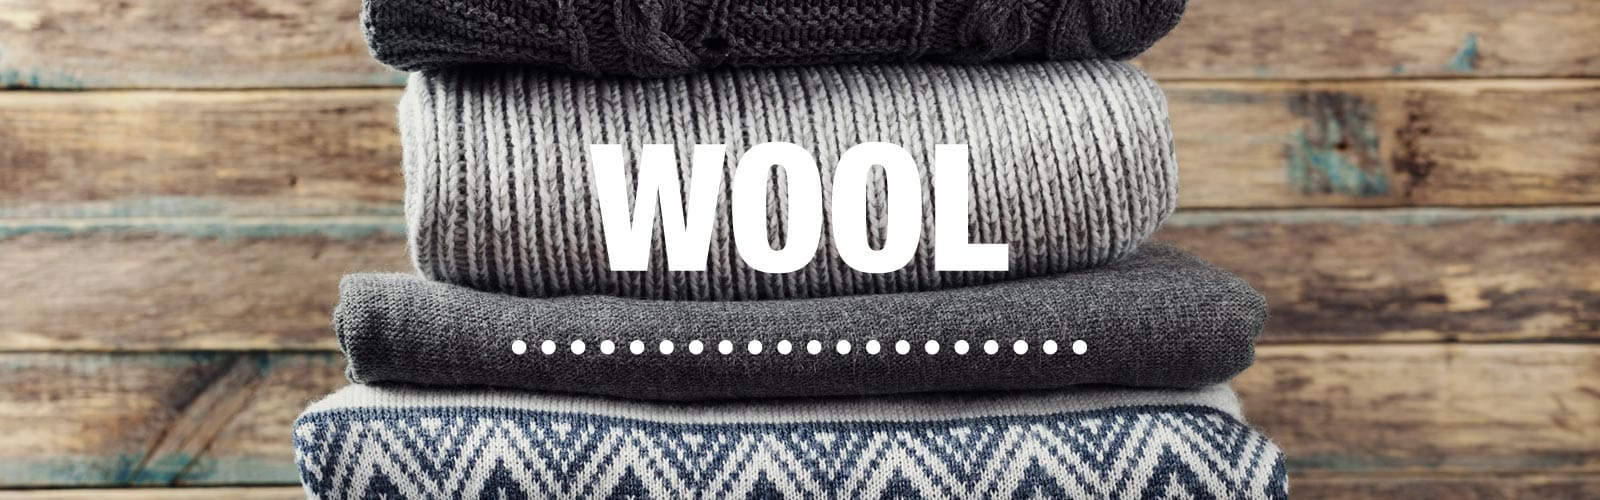 Wool fabric: types and properties 27